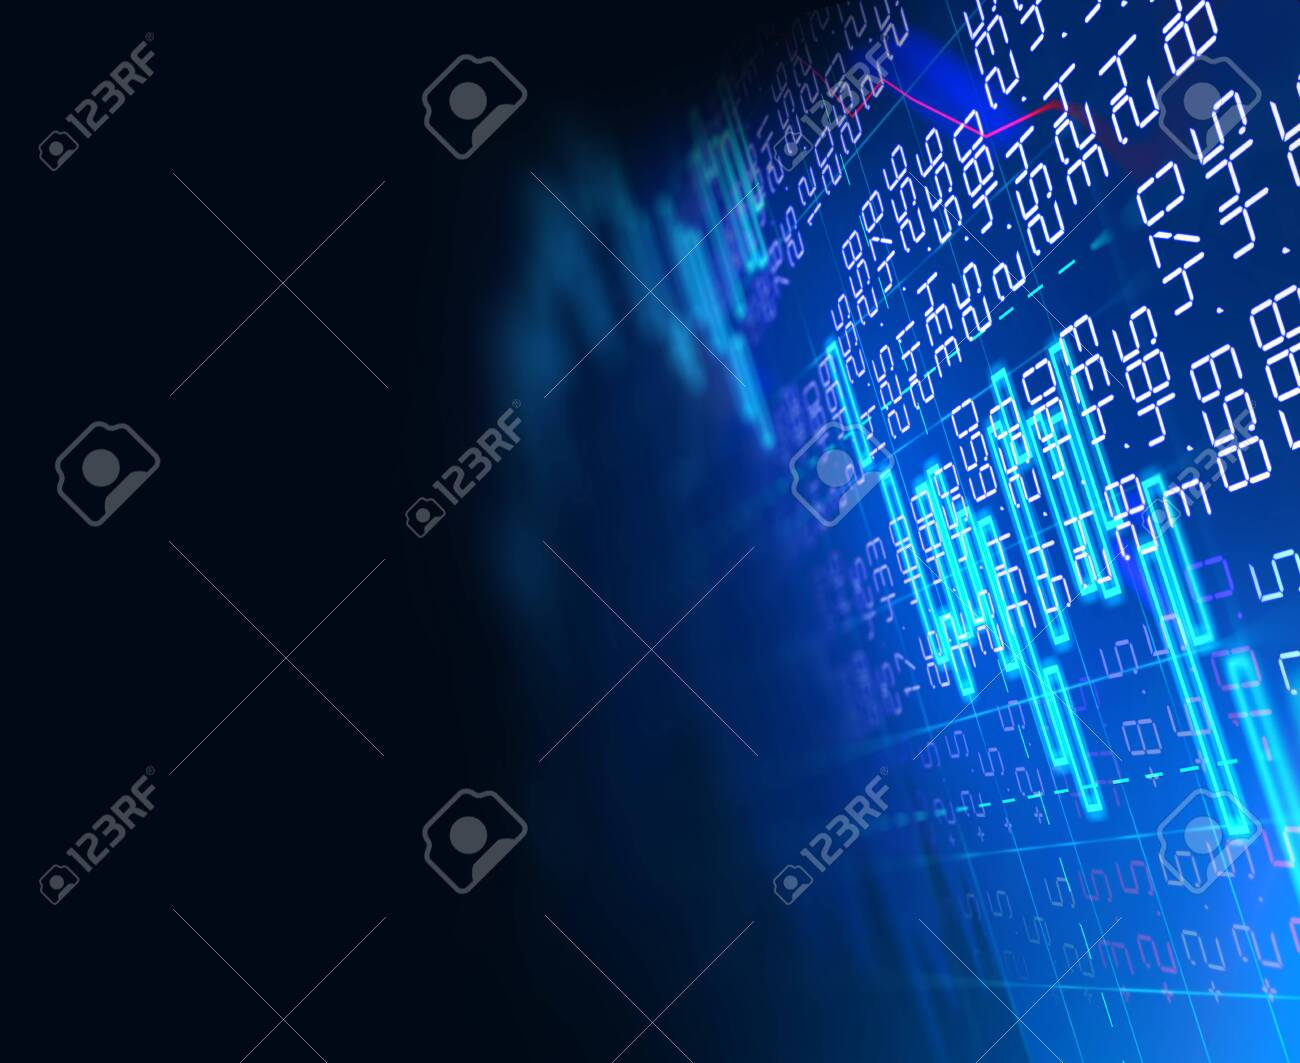 financial stock market graph on technology abstract background - 126707142